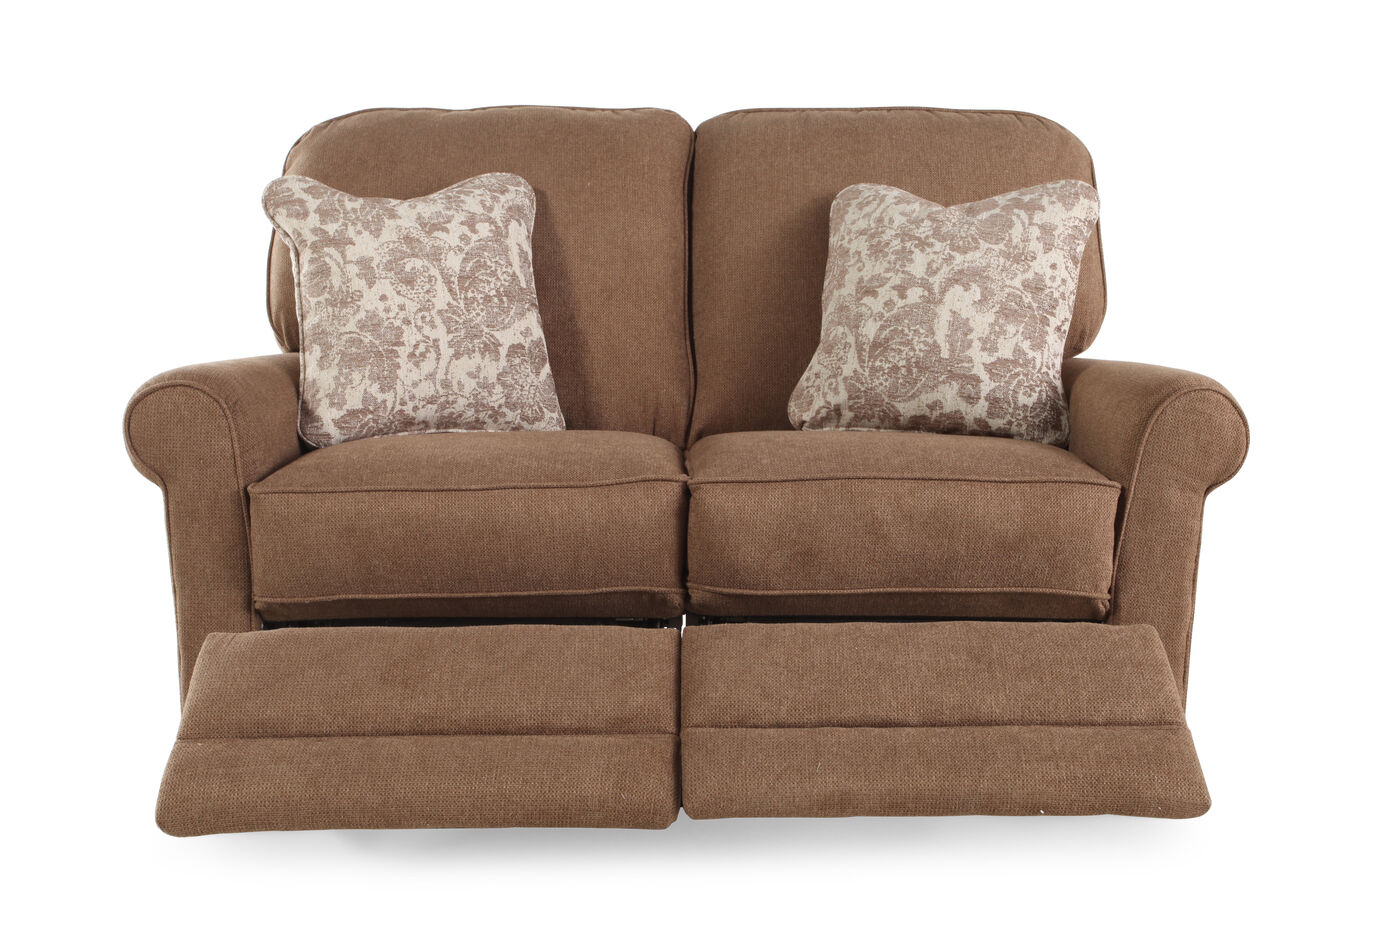 reclining traditional 59 5 loveseat in mushroom brown mathis brothers furniture. Black Bedroom Furniture Sets. Home Design Ideas